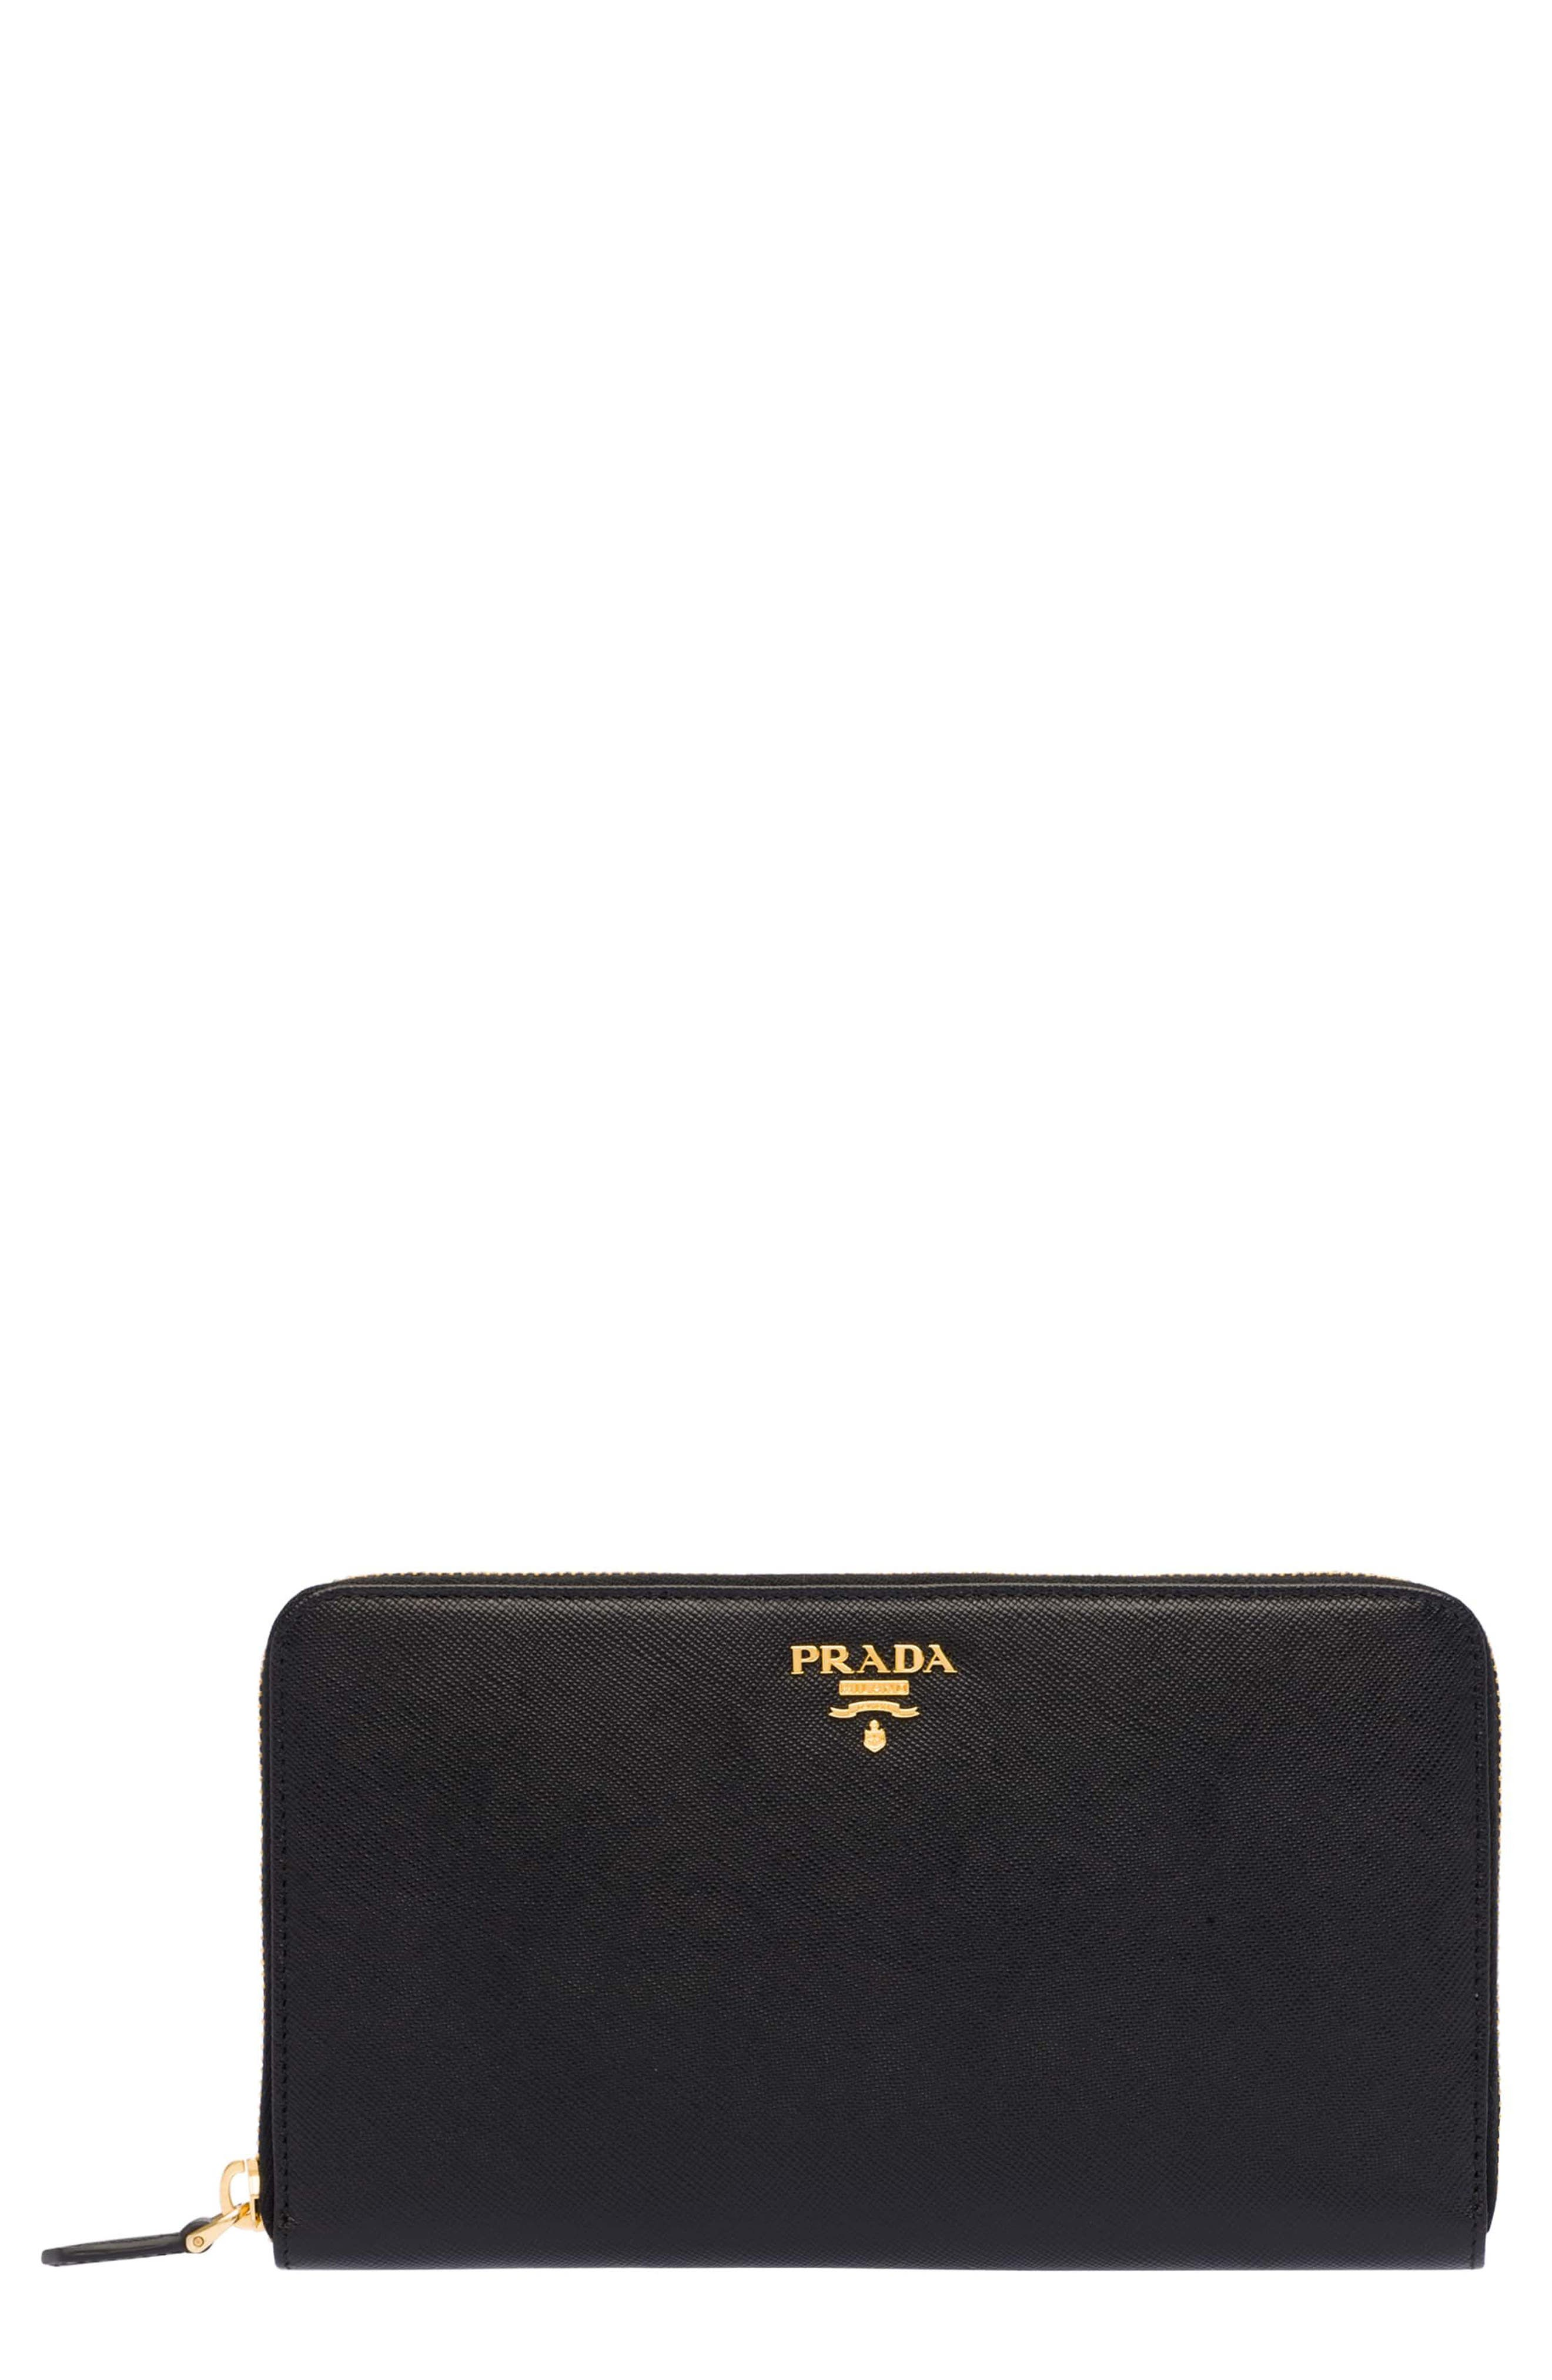 Oro Saffiano Leather Zip Around Wallet,                             Main thumbnail 1, color,                             001